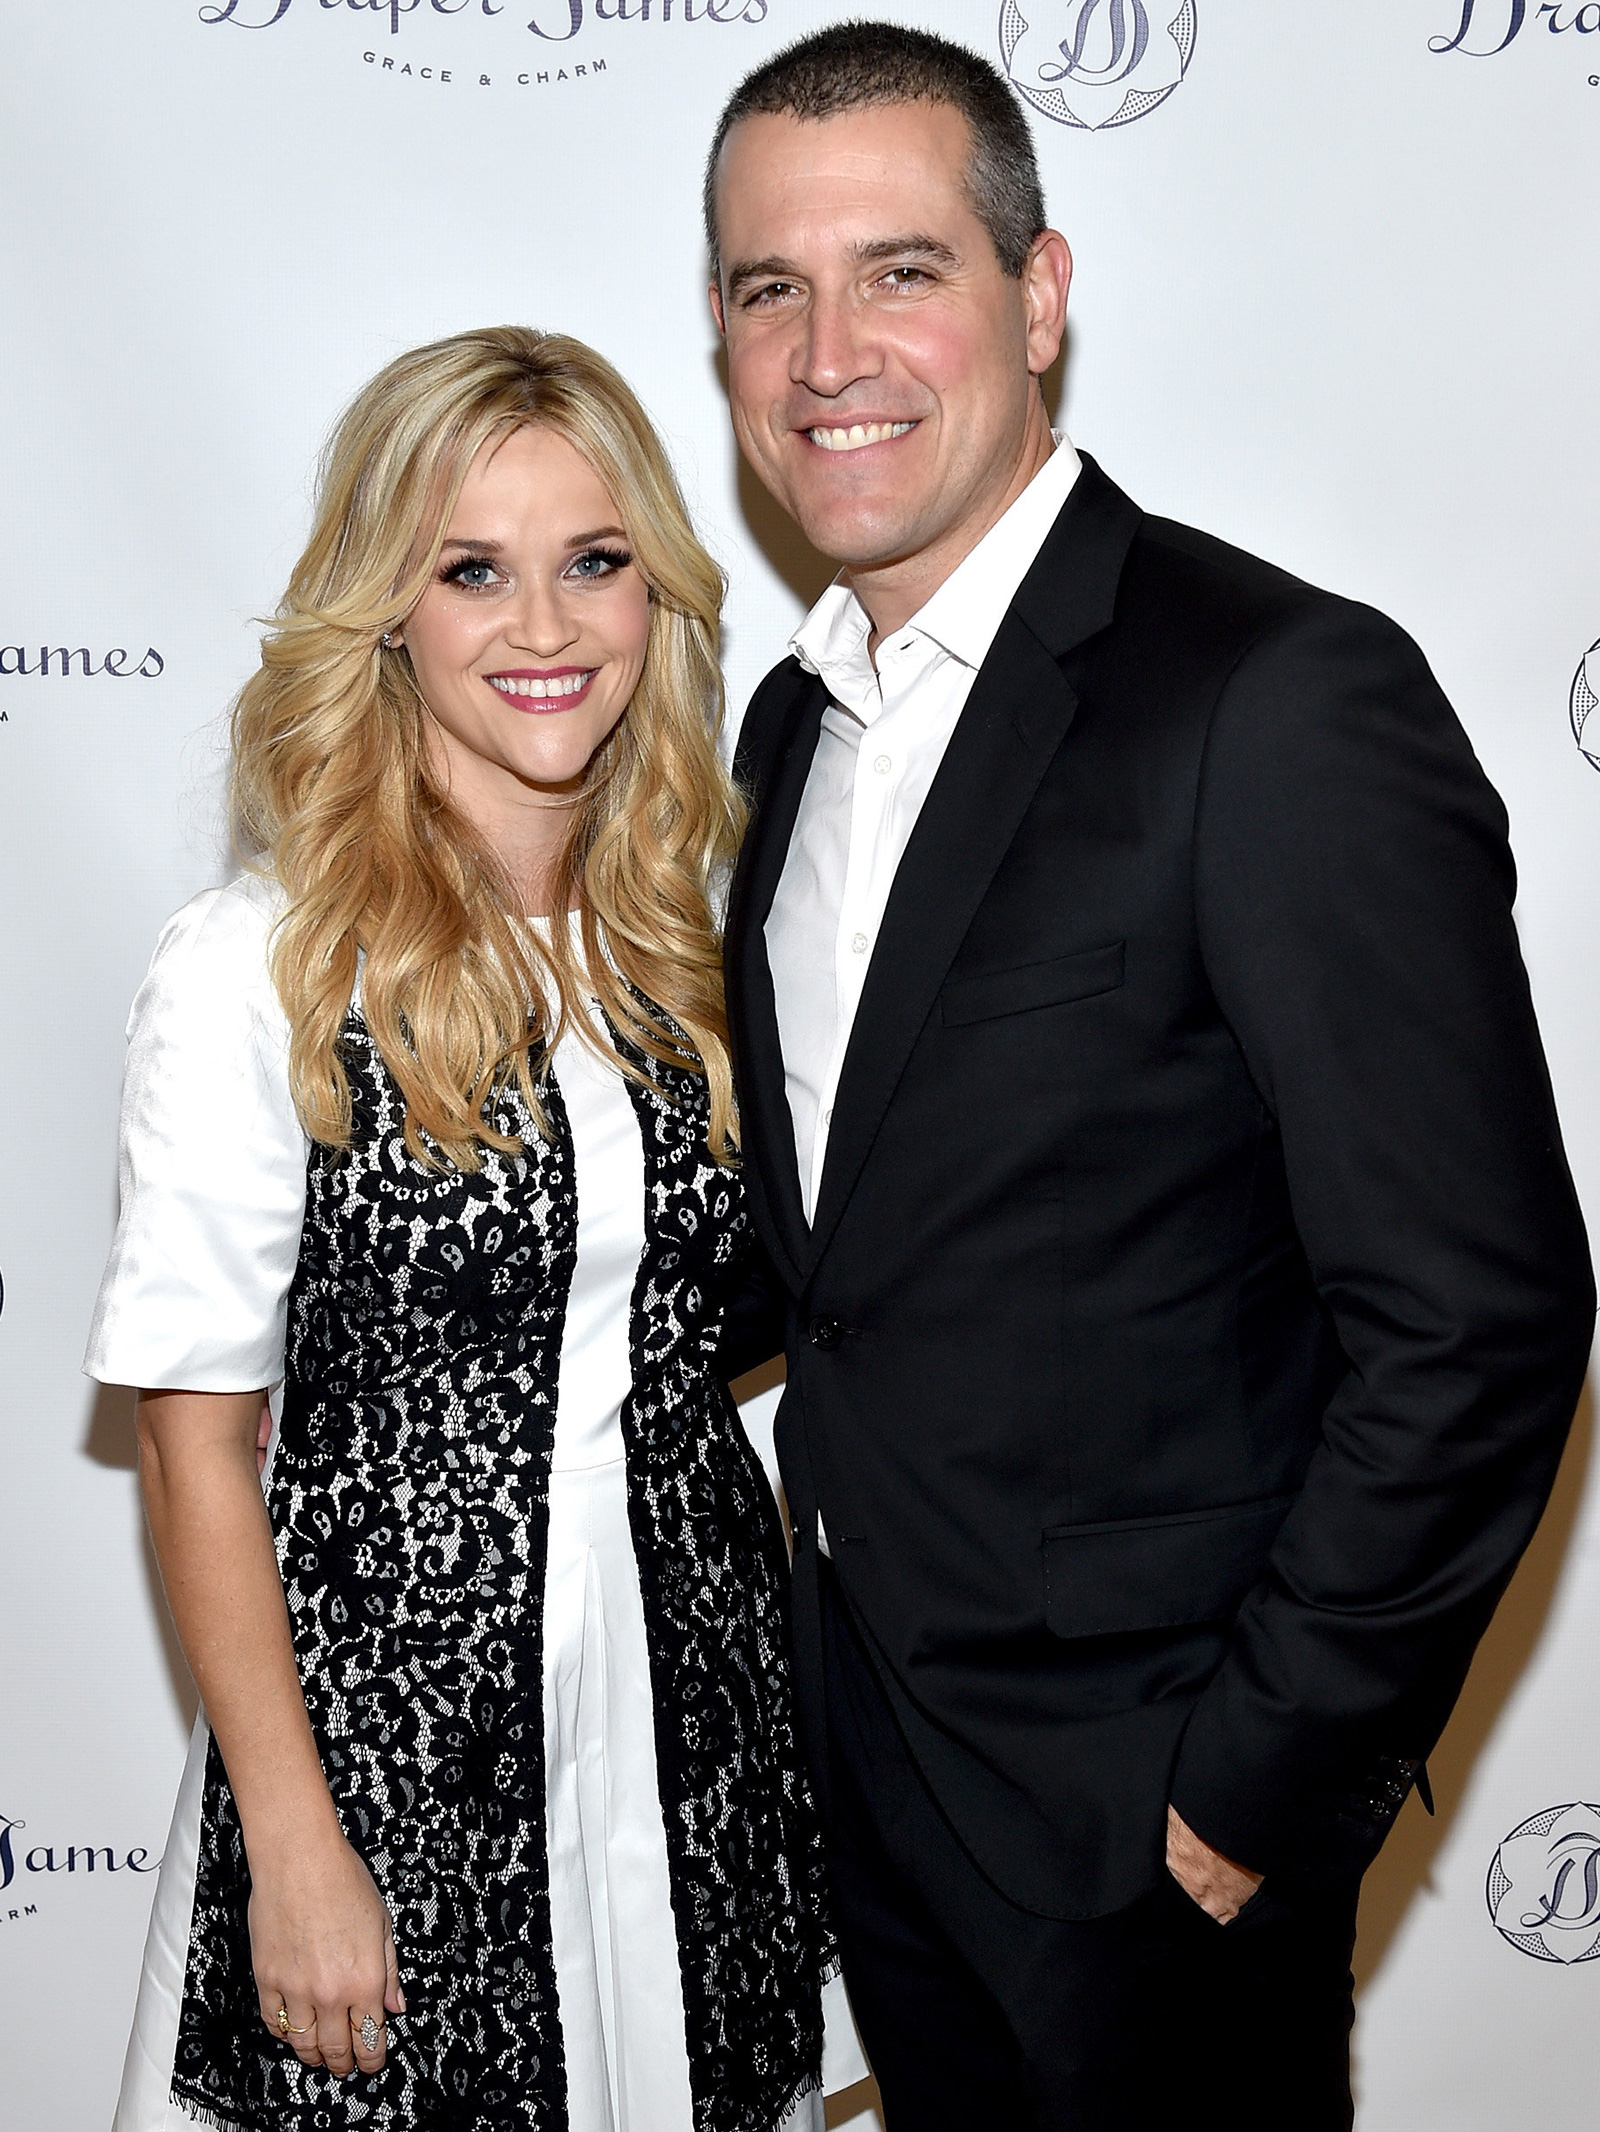 Reese Witherspoon Celebrates Fifth Anniversary With Jim Toth